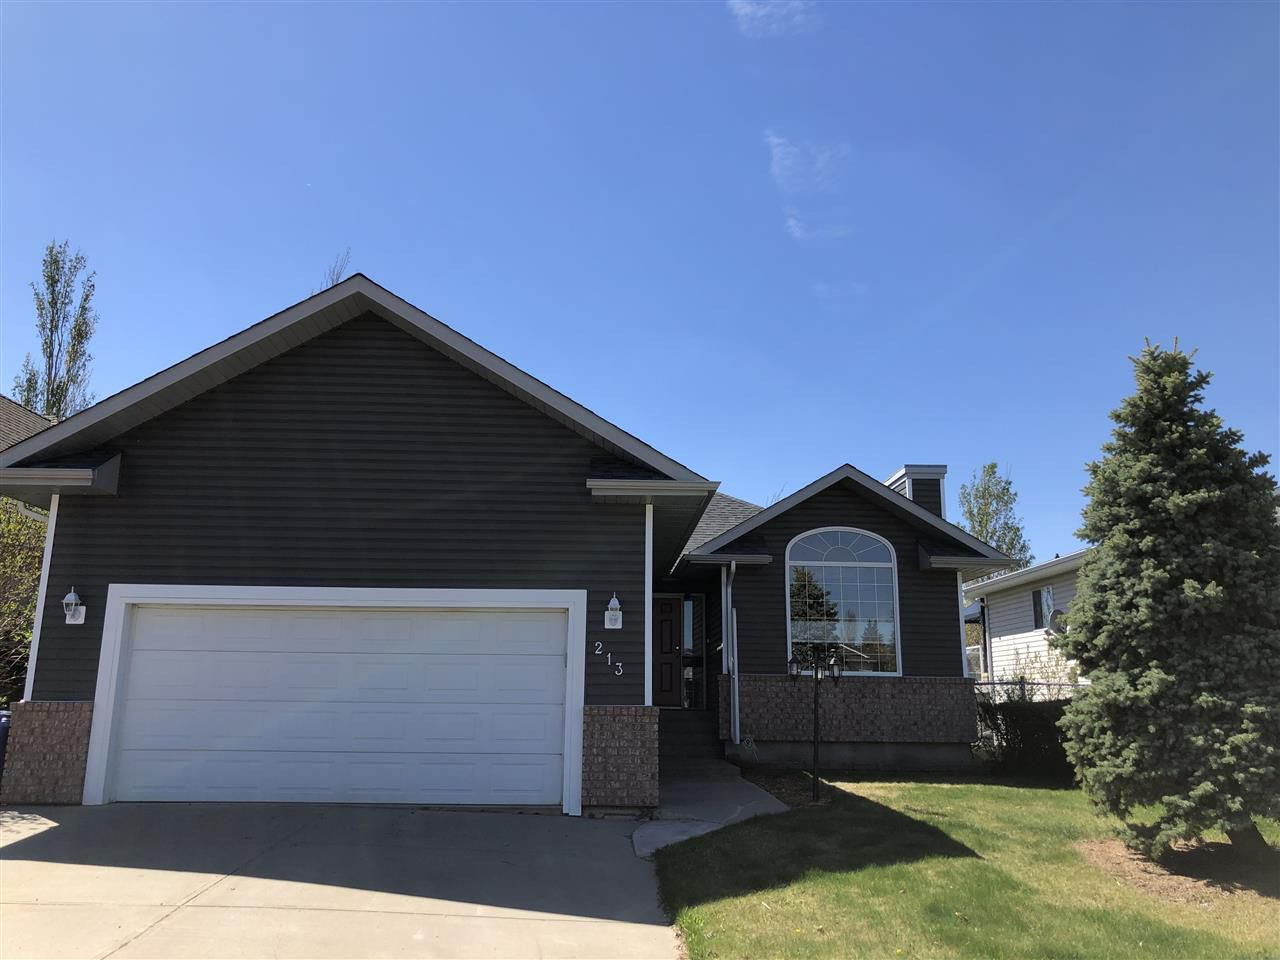 Main Photo: 213 Parkview Drive: Wetaskiwin House for sale : MLS®# E4160242